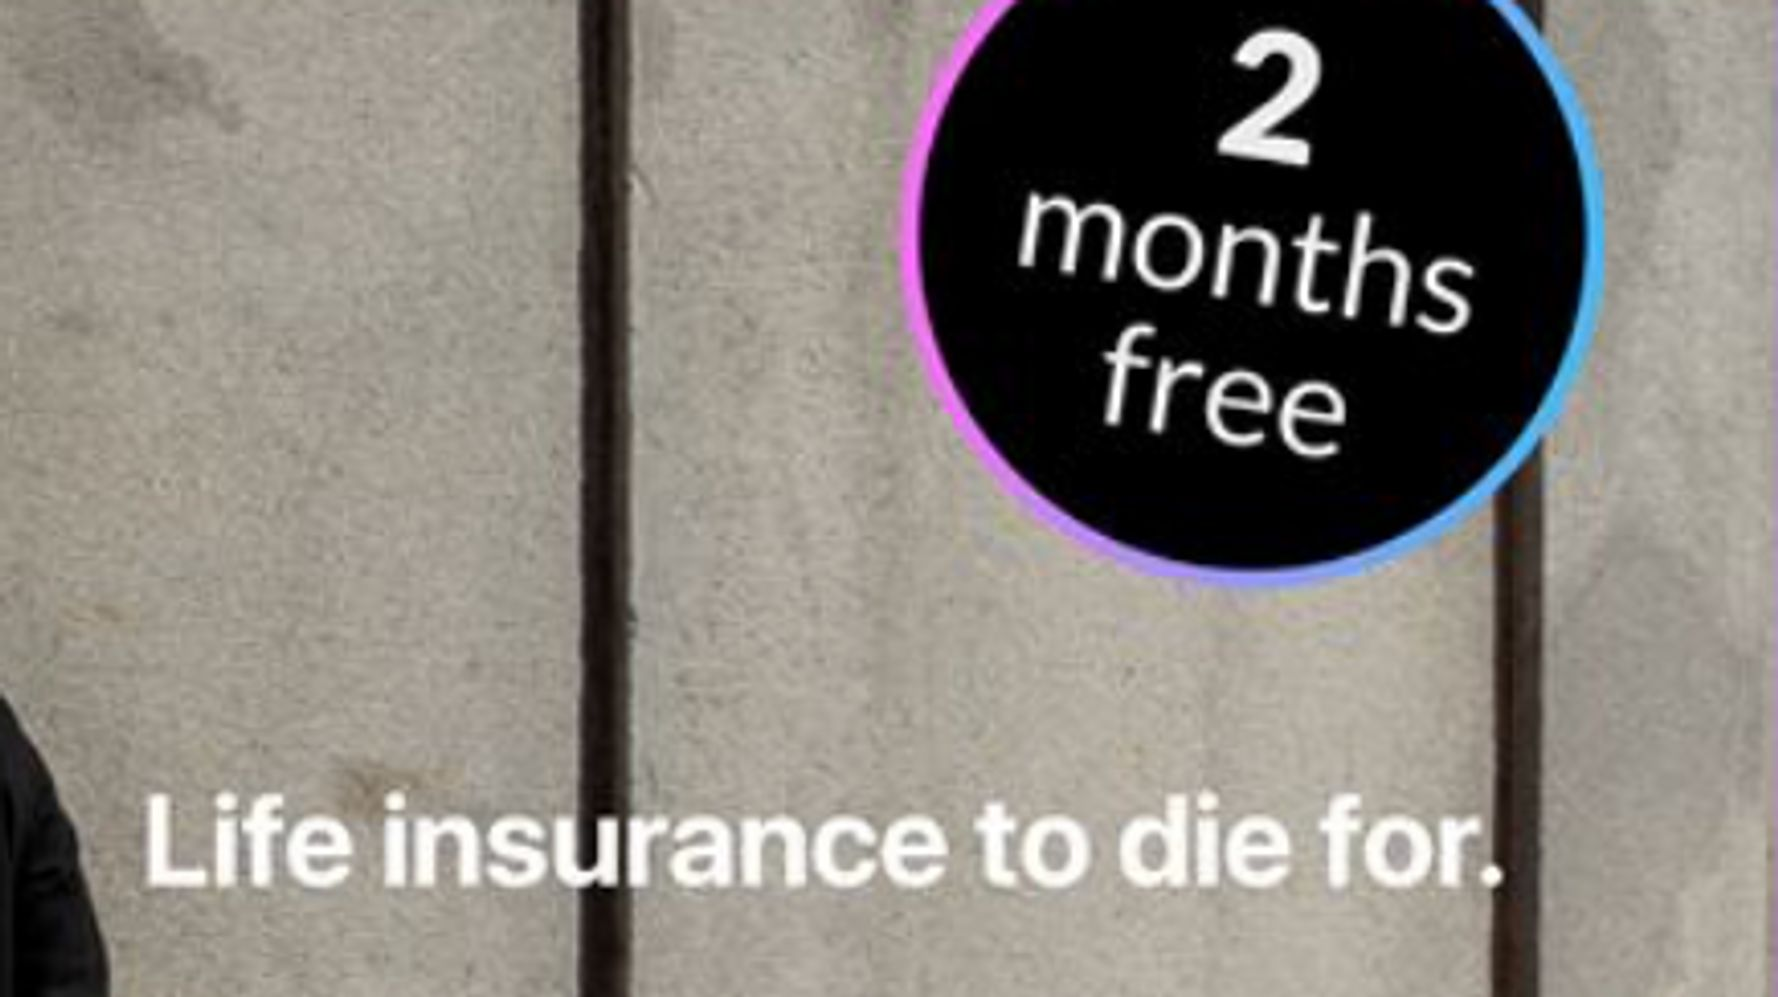 Dead Happy Life Insurance Advert Banned For 'Trivialising Suicide'